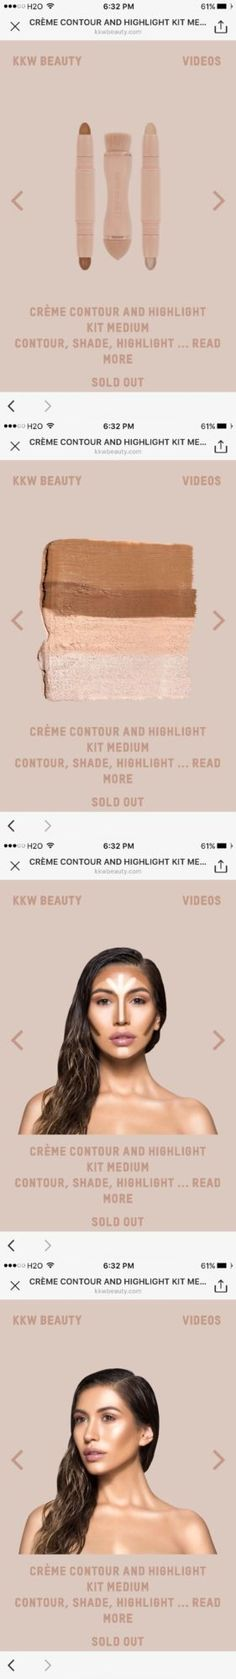 Other Face Makeup: Kkw Medium Crème Contour And Highlight Kit Kim Kardashian Beauty Order Confirmed -> BUY IT NOW ONLY: $175 on eBay!